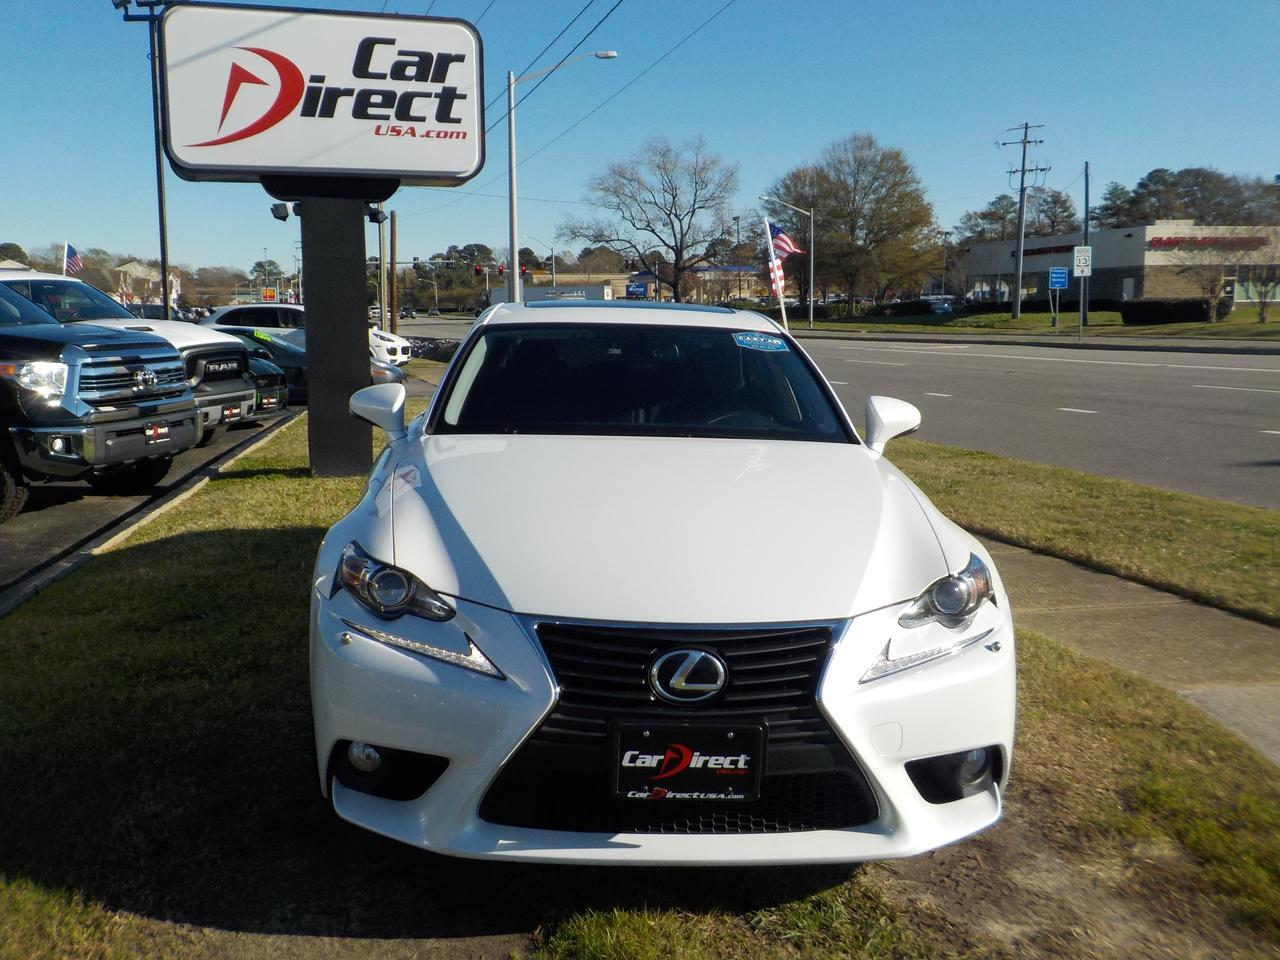 2014 LEXUS IS 250 AWD, LEATHER, BACKUP CAM, BLUETOOTH WIRELESS, REMOTE START, HEATED & COOLED SEATS, ONLY 54K MILES! Virginia Beach VA